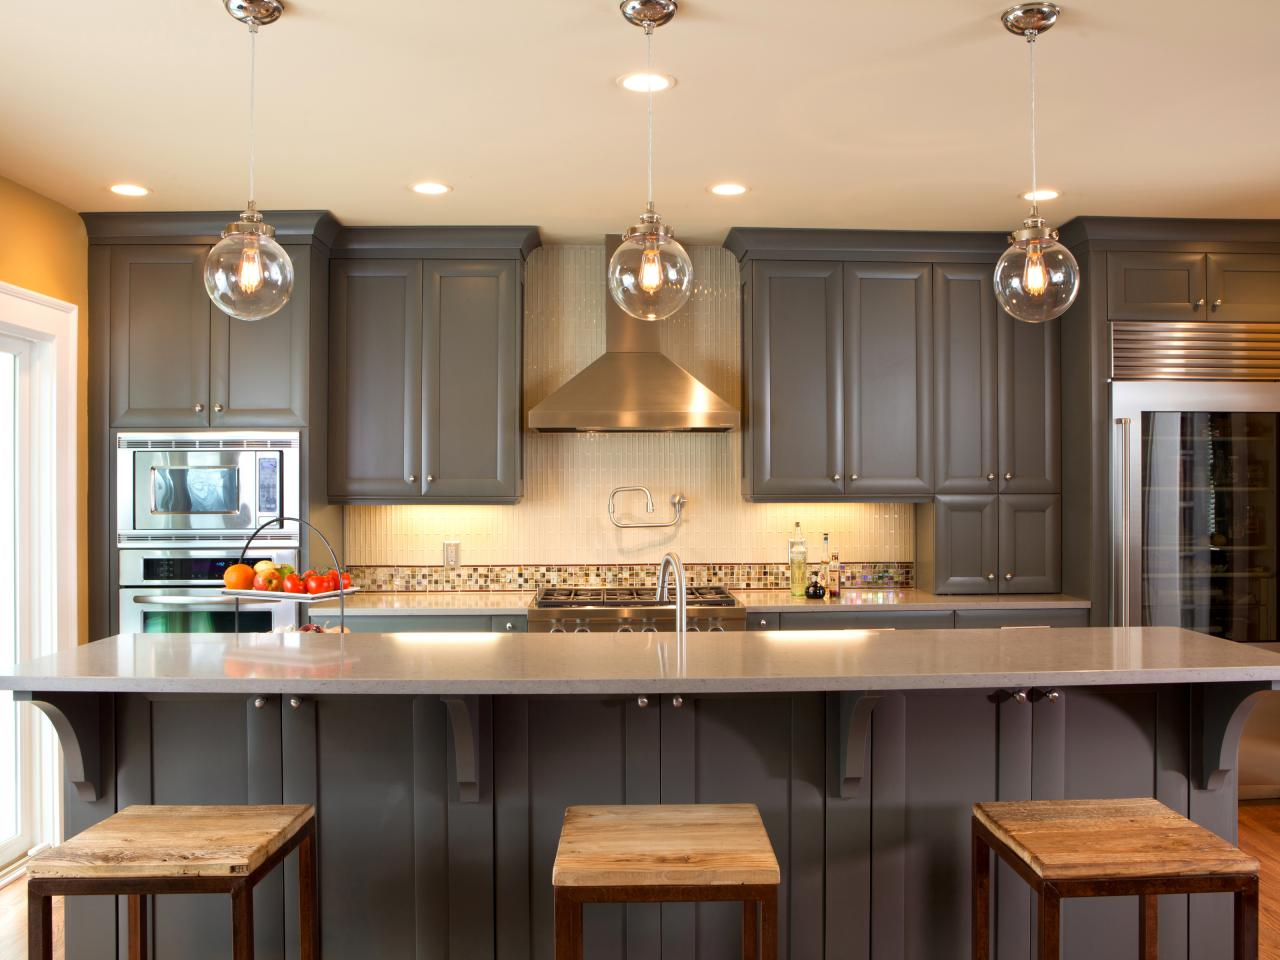 To Paint Kitchen 25 Tips For Painting Kitchen Cabinets Diy Network Blog Made